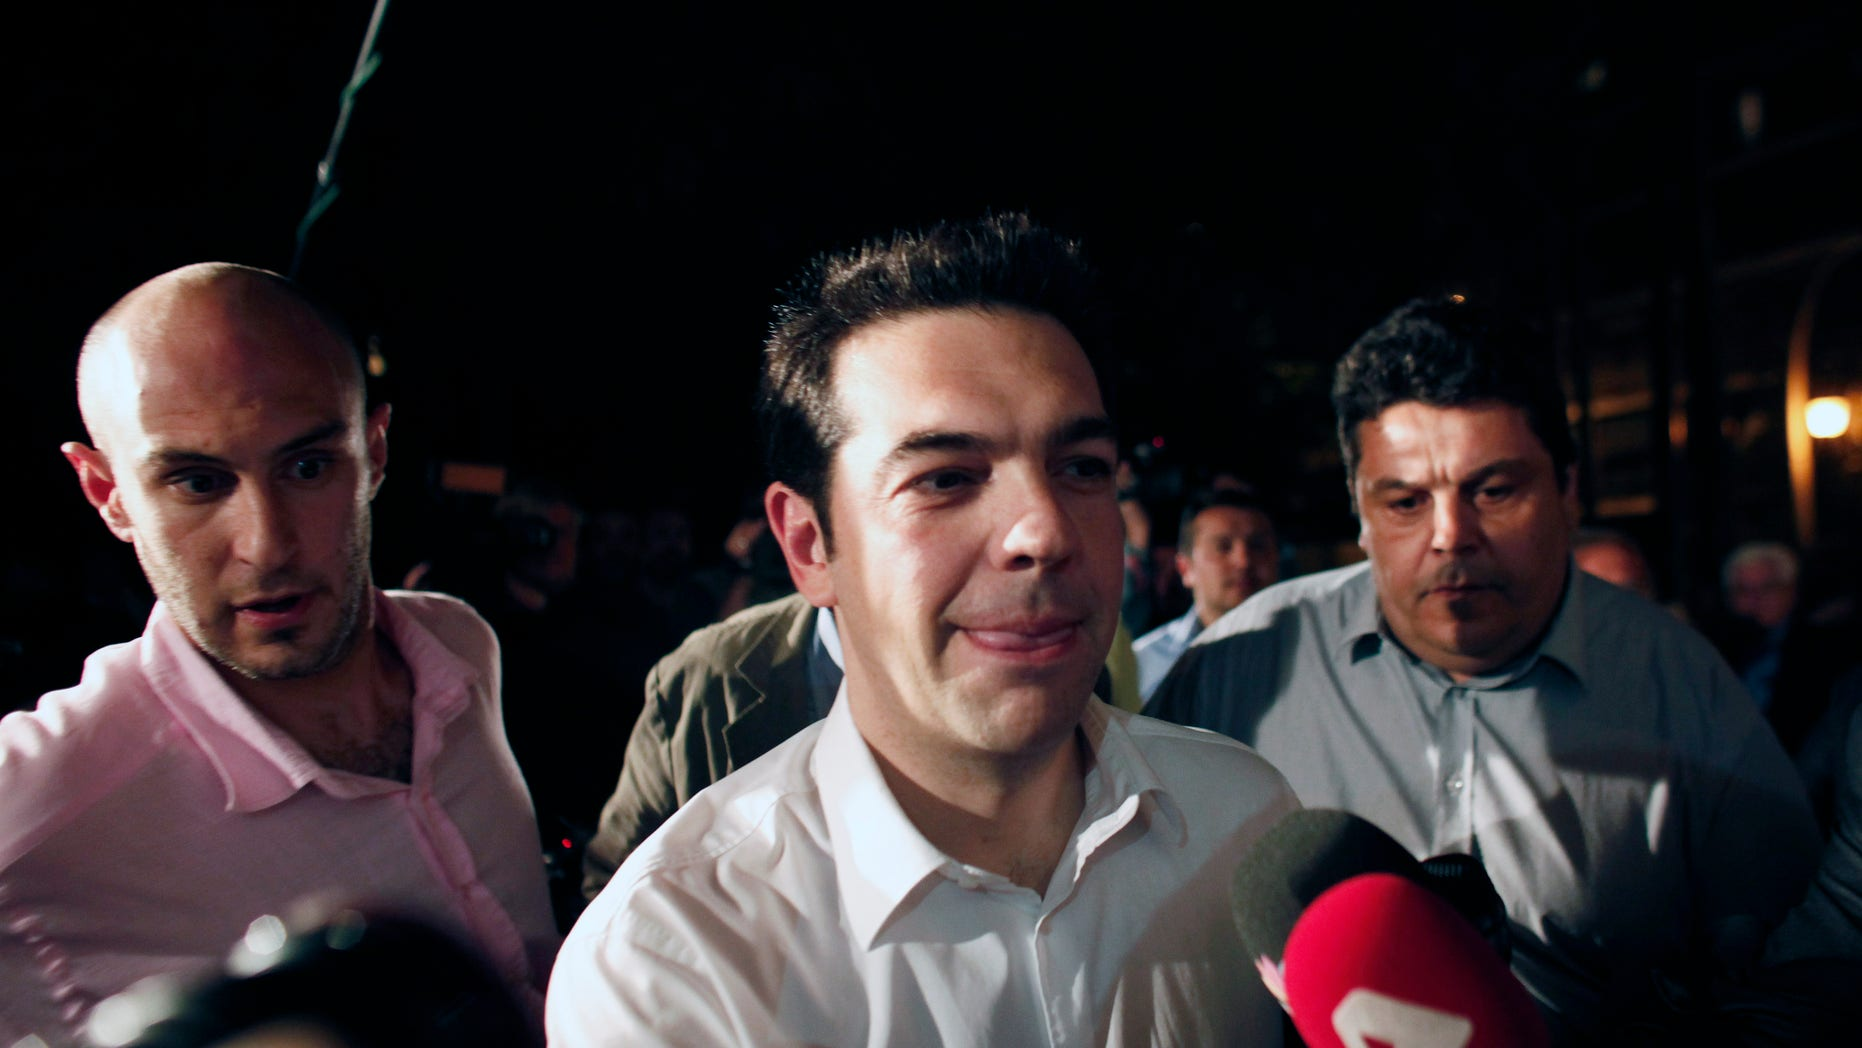 May 6, 2012: Greek leader of Coalition of the Radical Left party (SYRIZA) Alexis Tsipras arrives at the headquarters of his party in Athens.